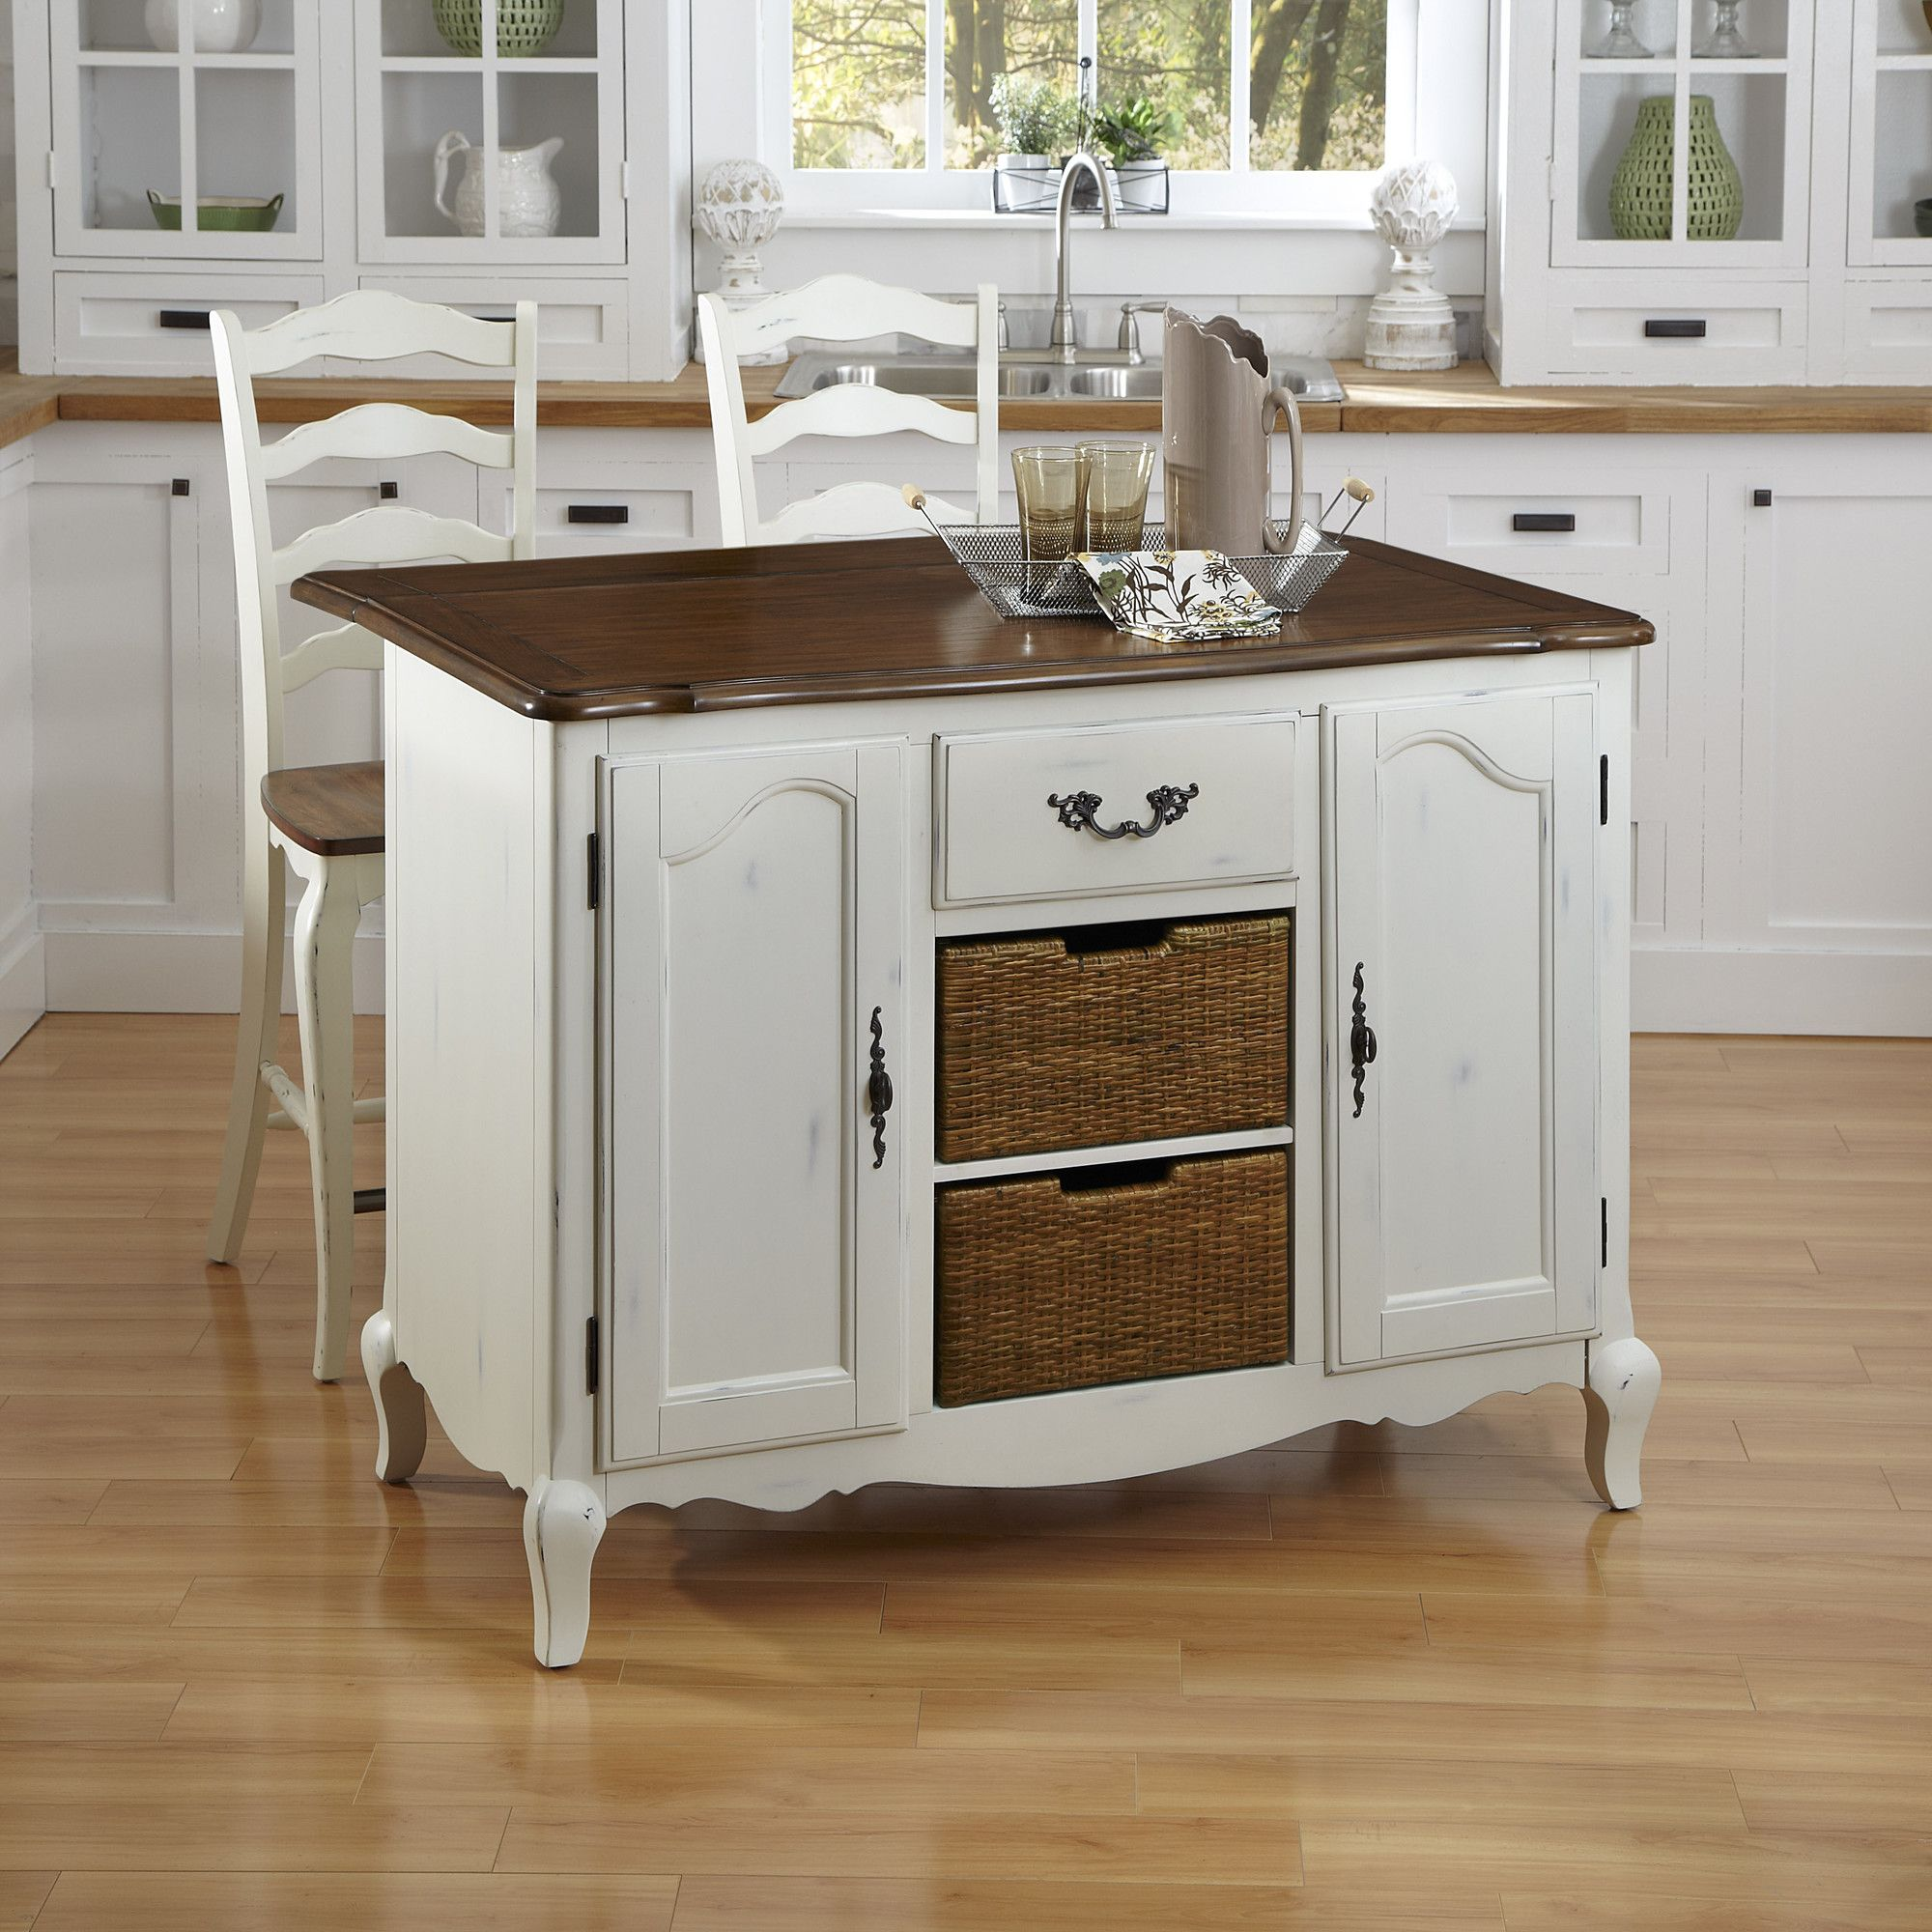 French countryside kitchen island wayfair